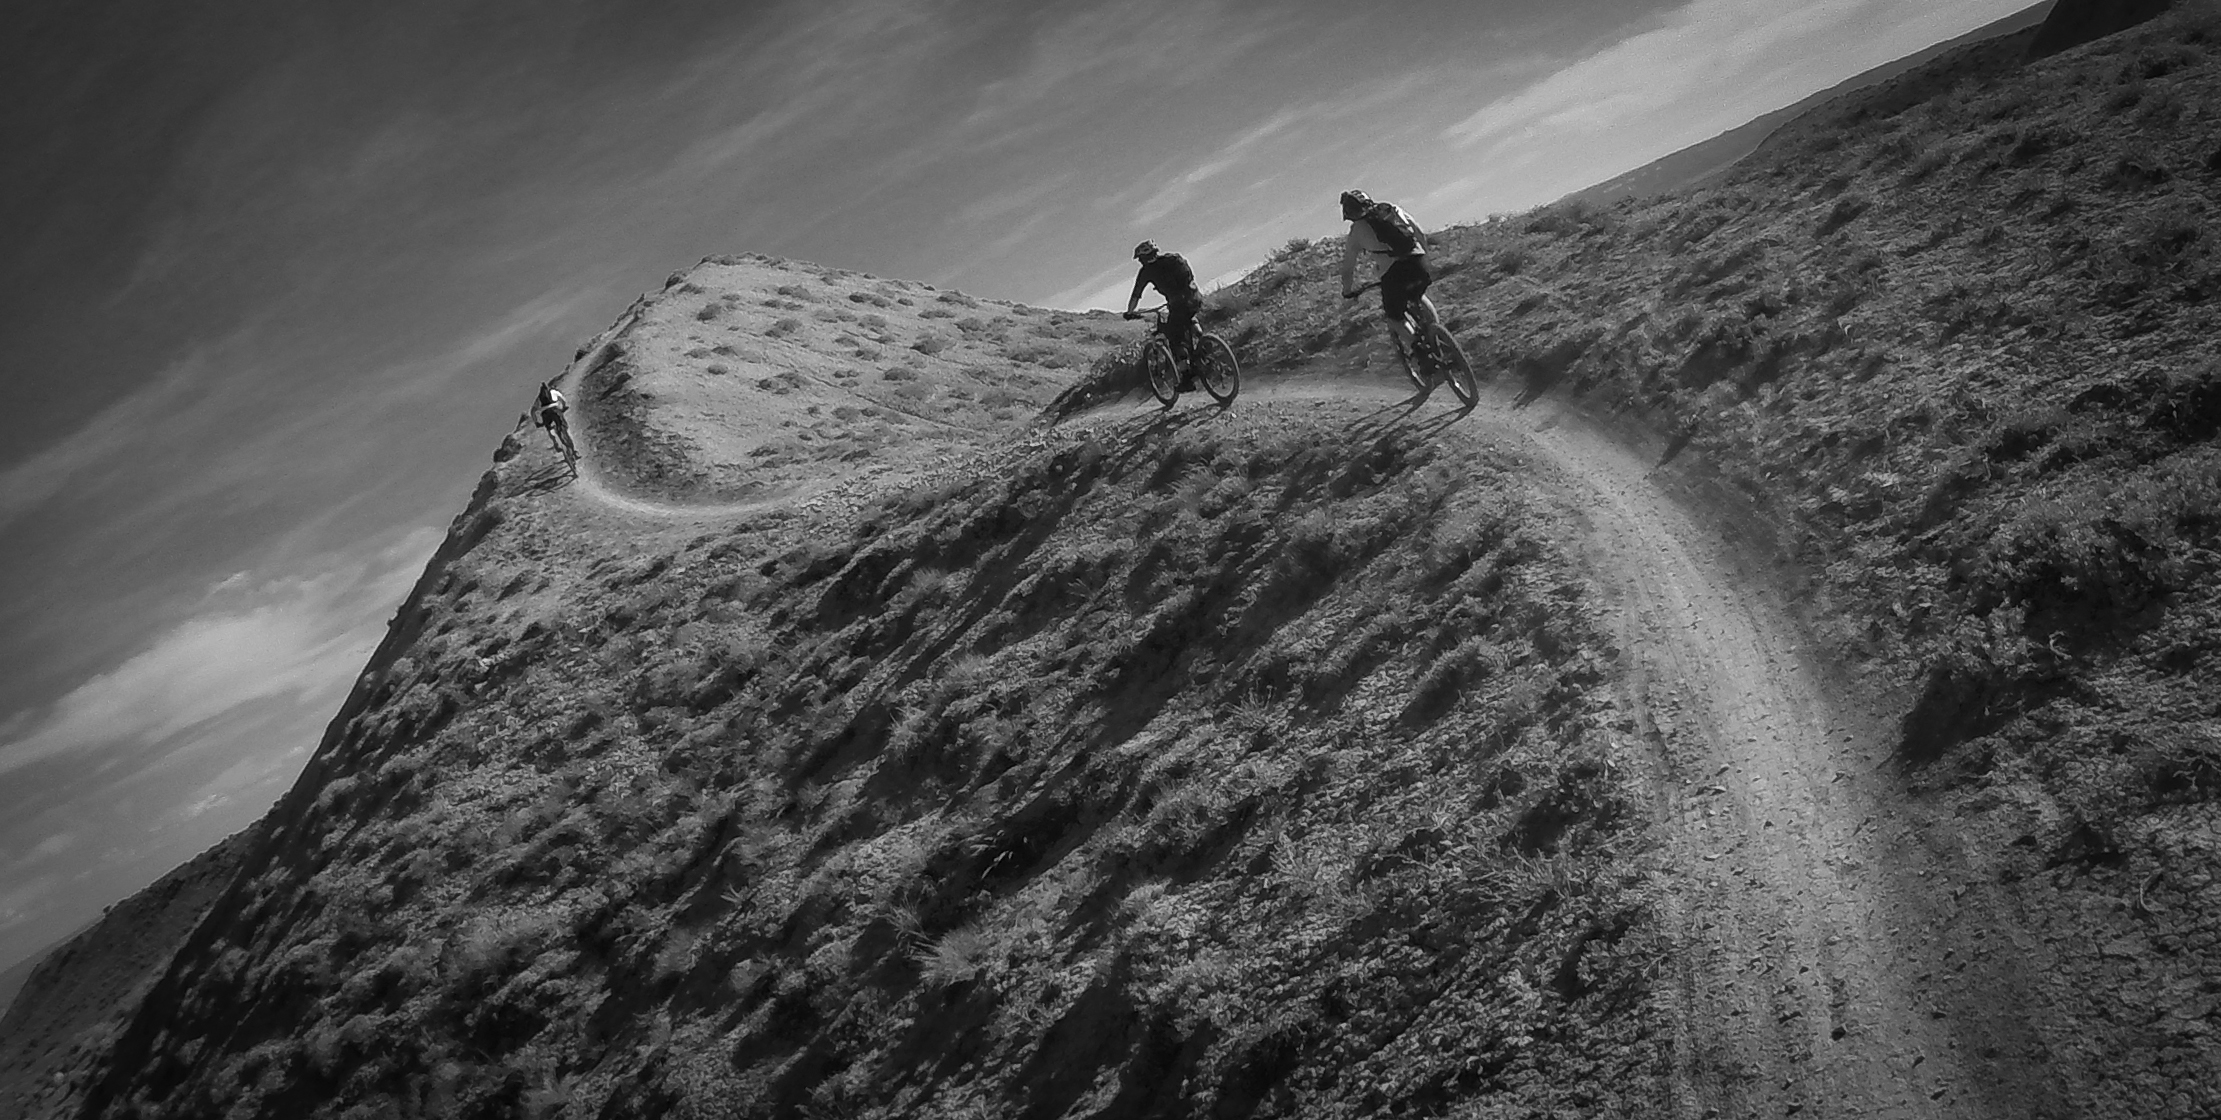 Mountain Bike Photography: 10 Editing Tips for Beginners ...